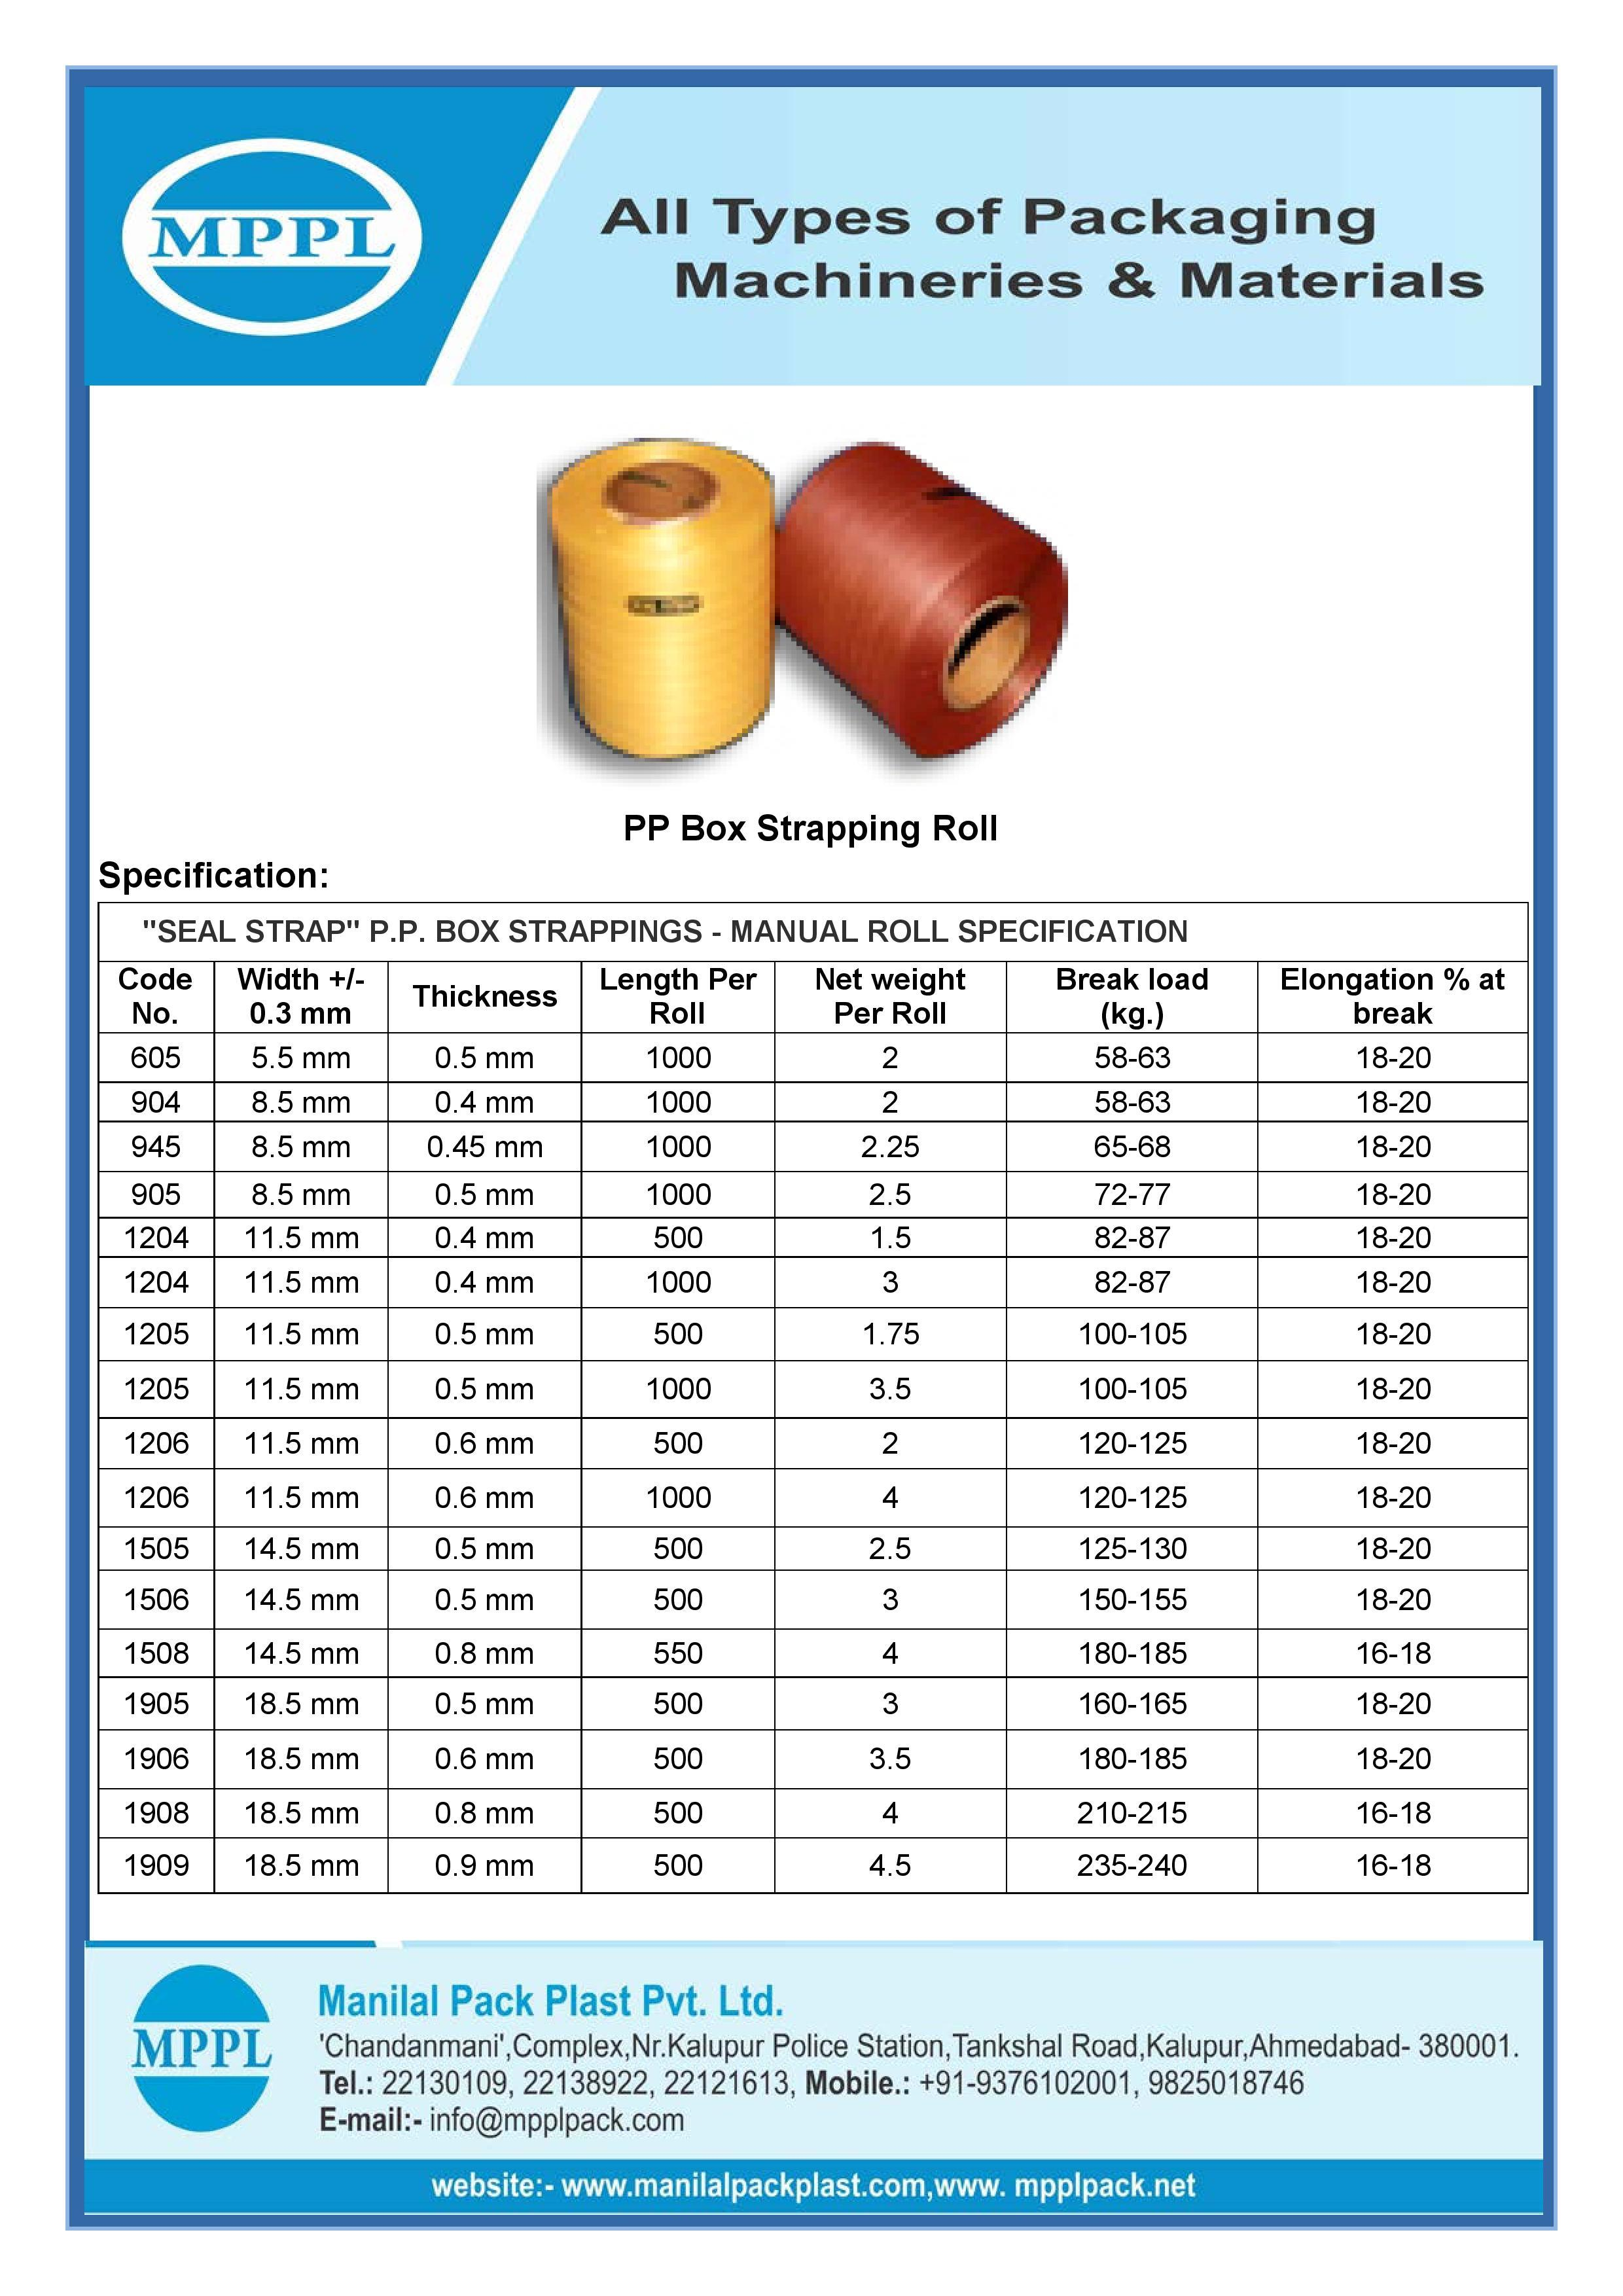 PP Box Strapping Manual Roll